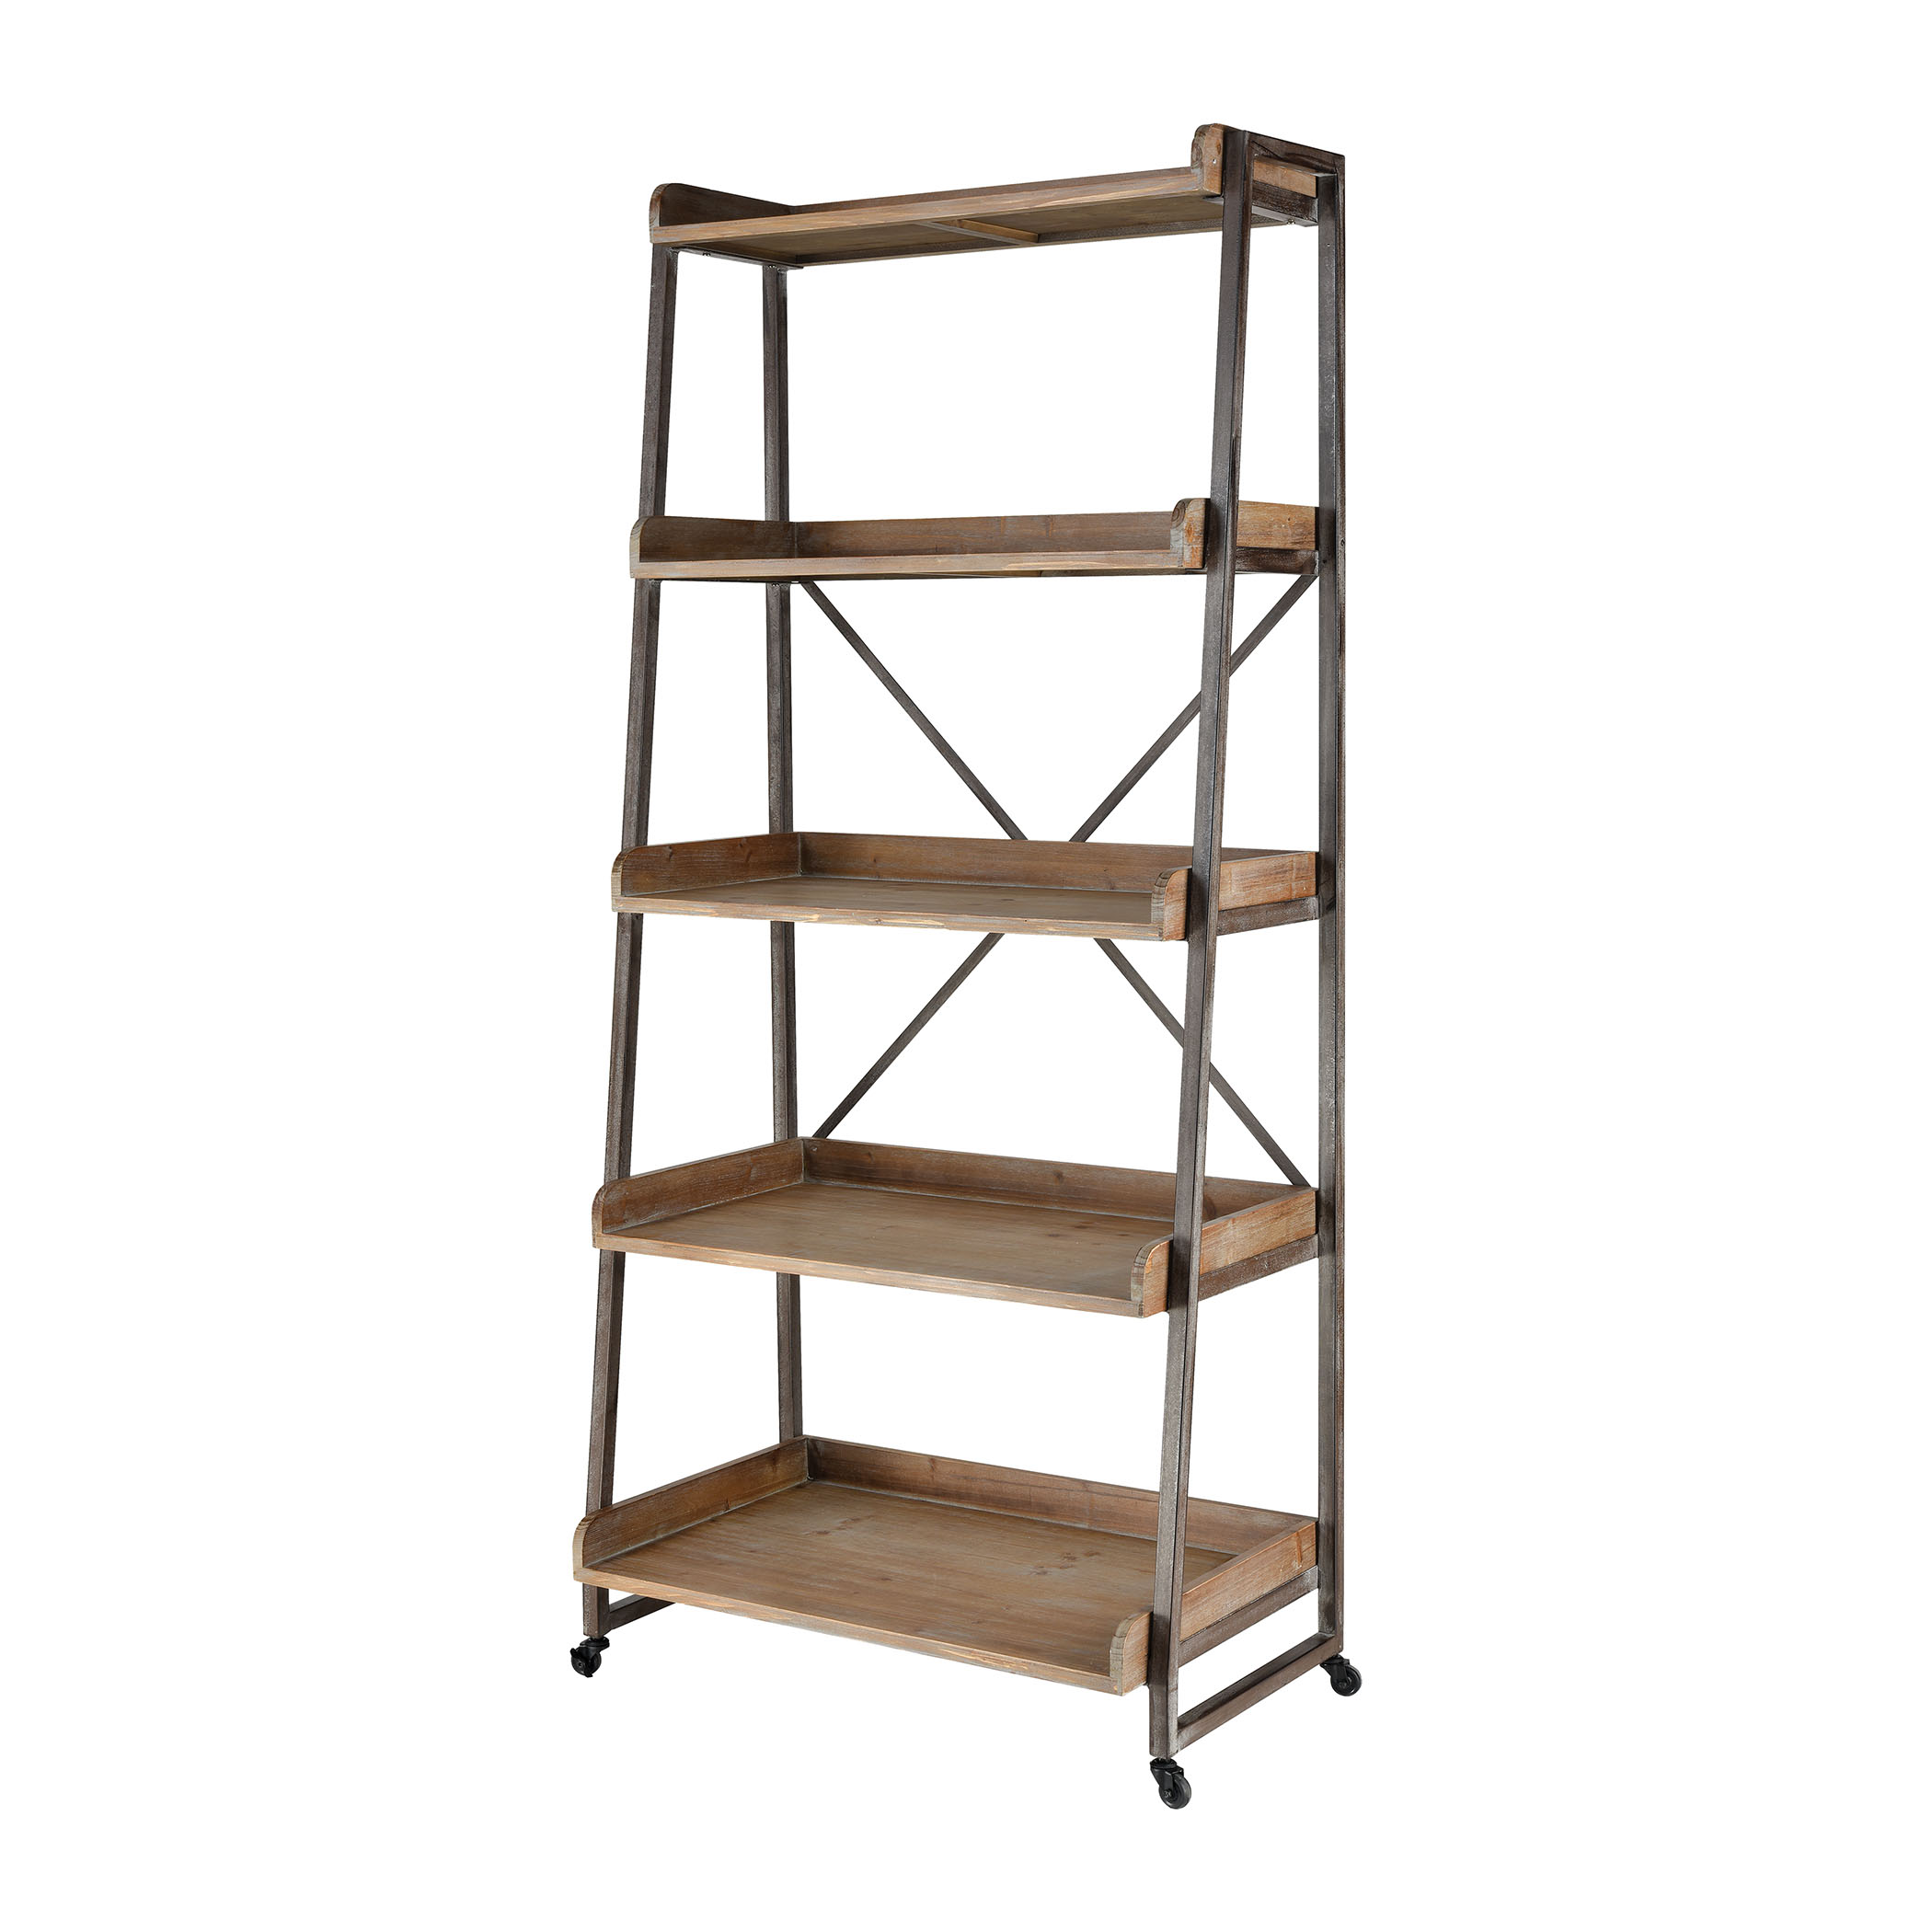 Hildago Bookshelf in Natural Wood and Pewter | Elk Home